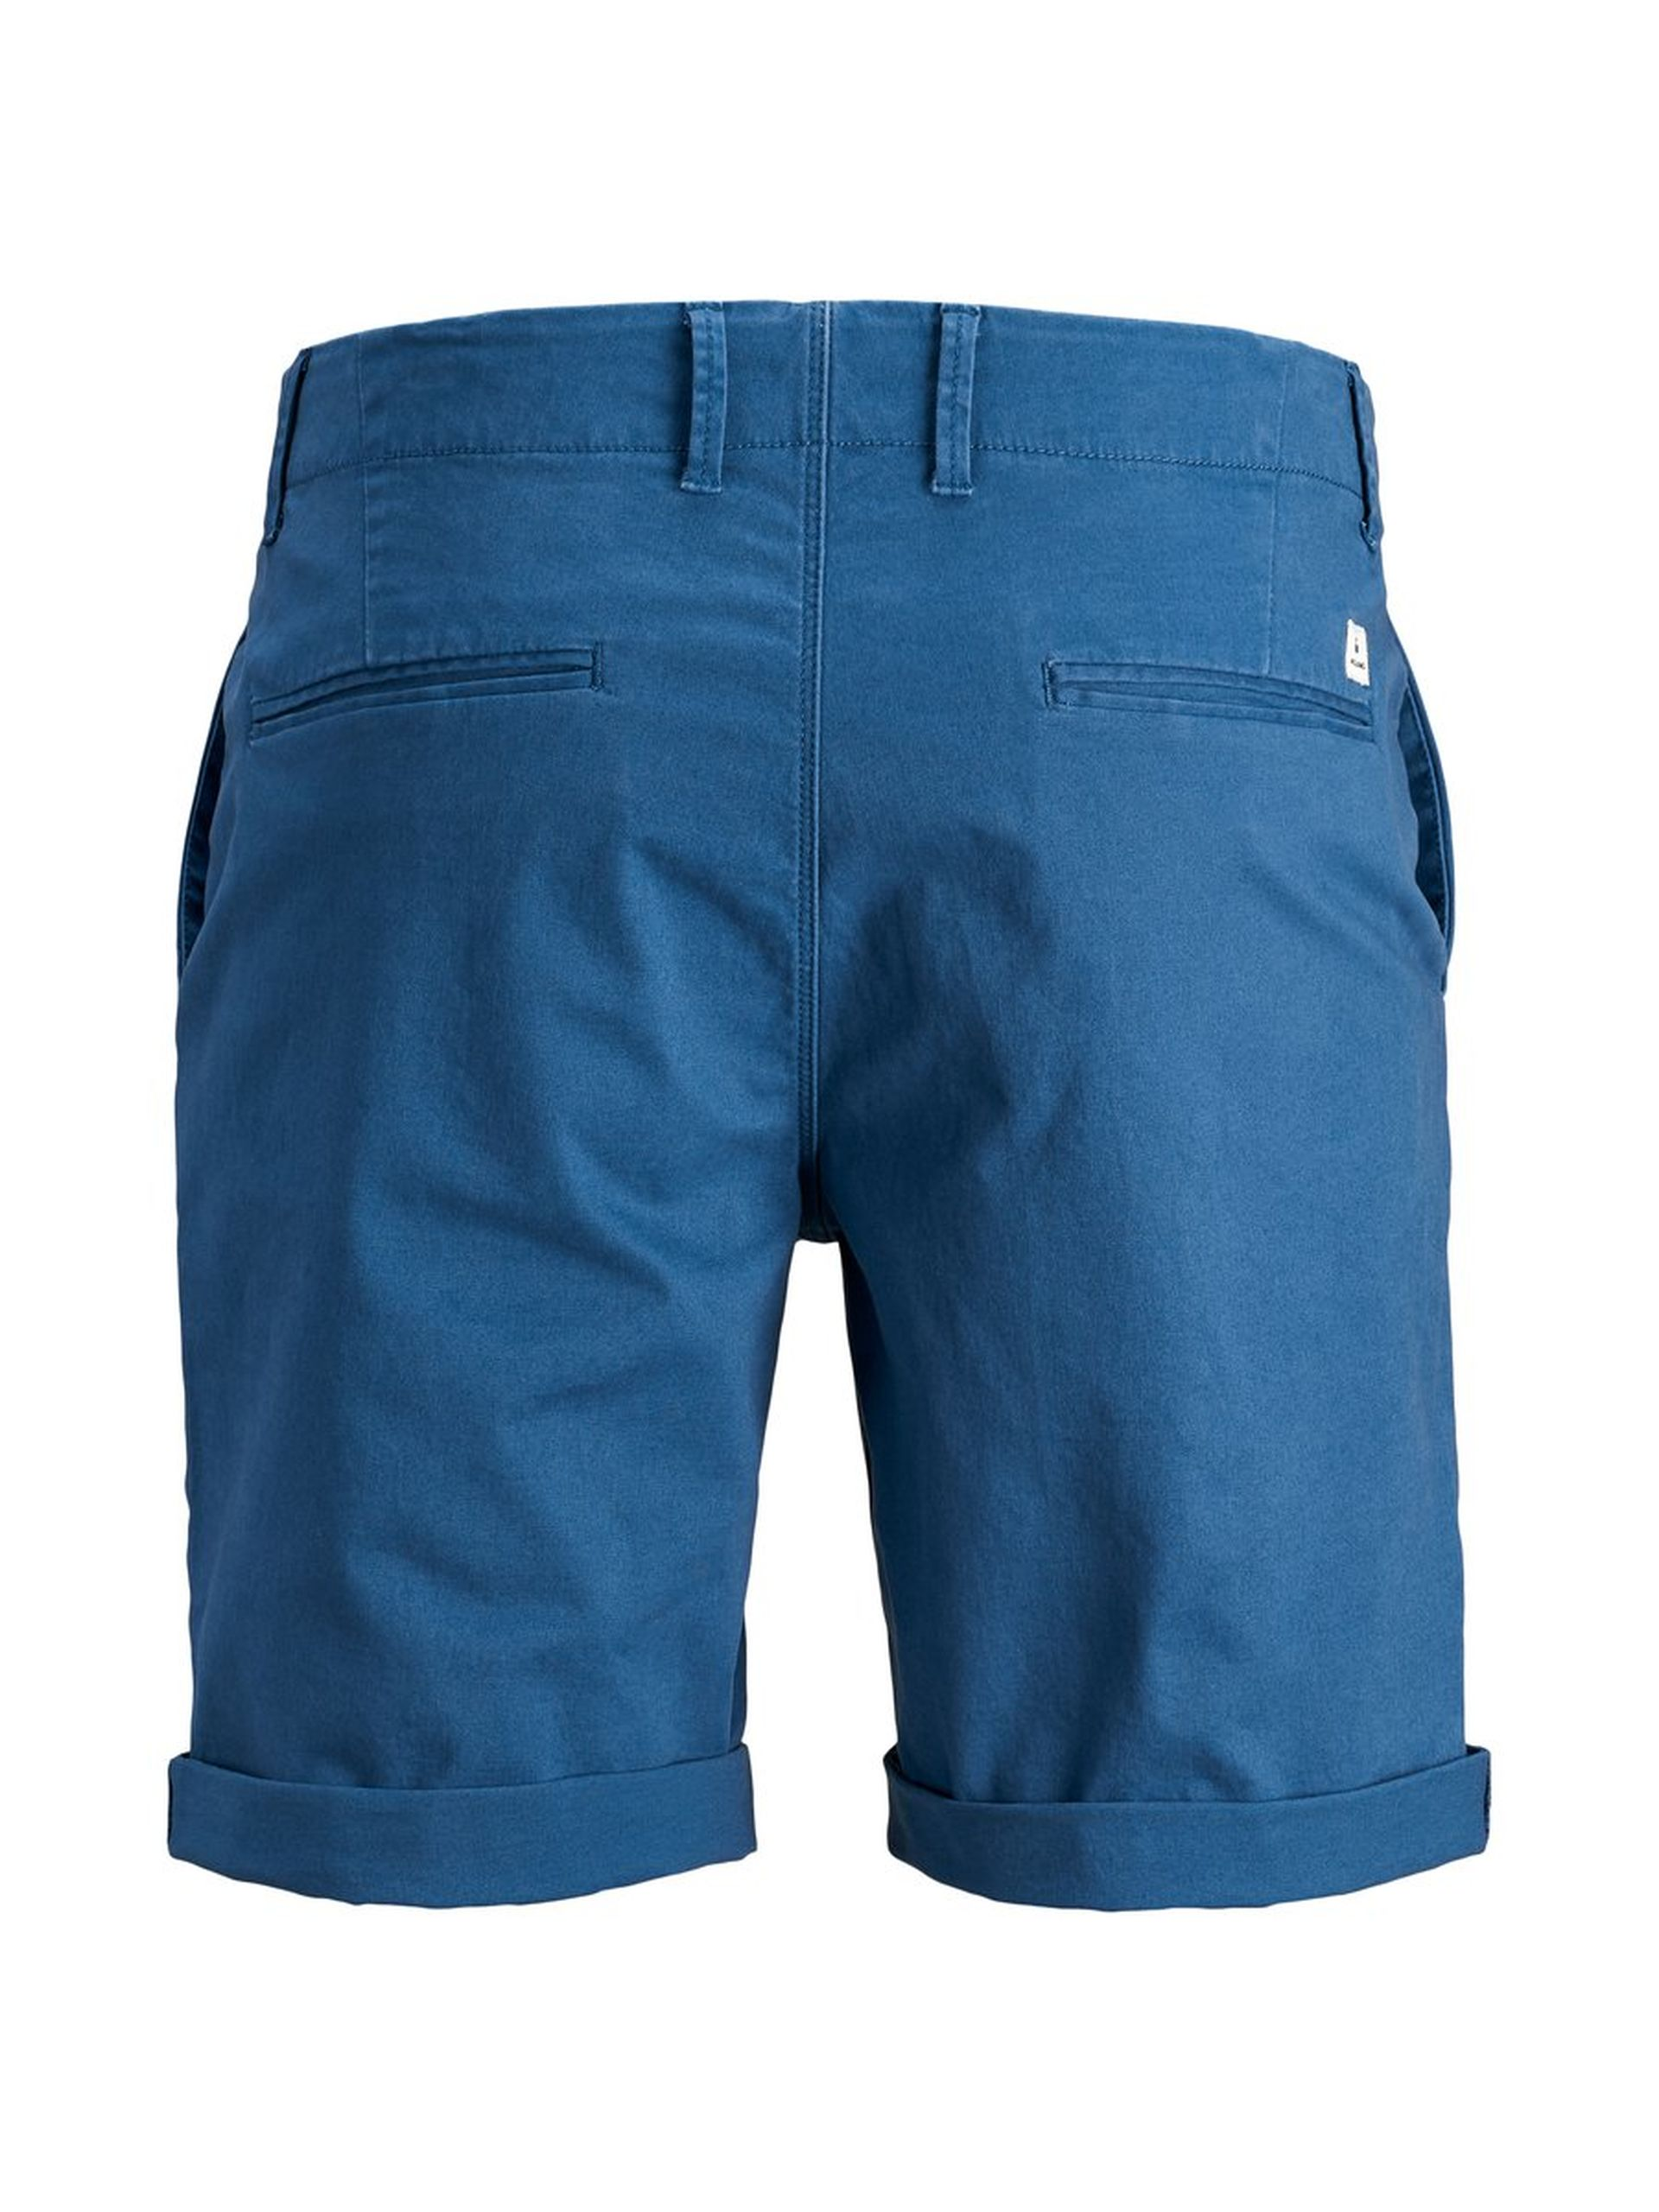 Jack-amp-Jones-Mens-039-JJIENZO-039-Chino-Shorts thumbnail 12